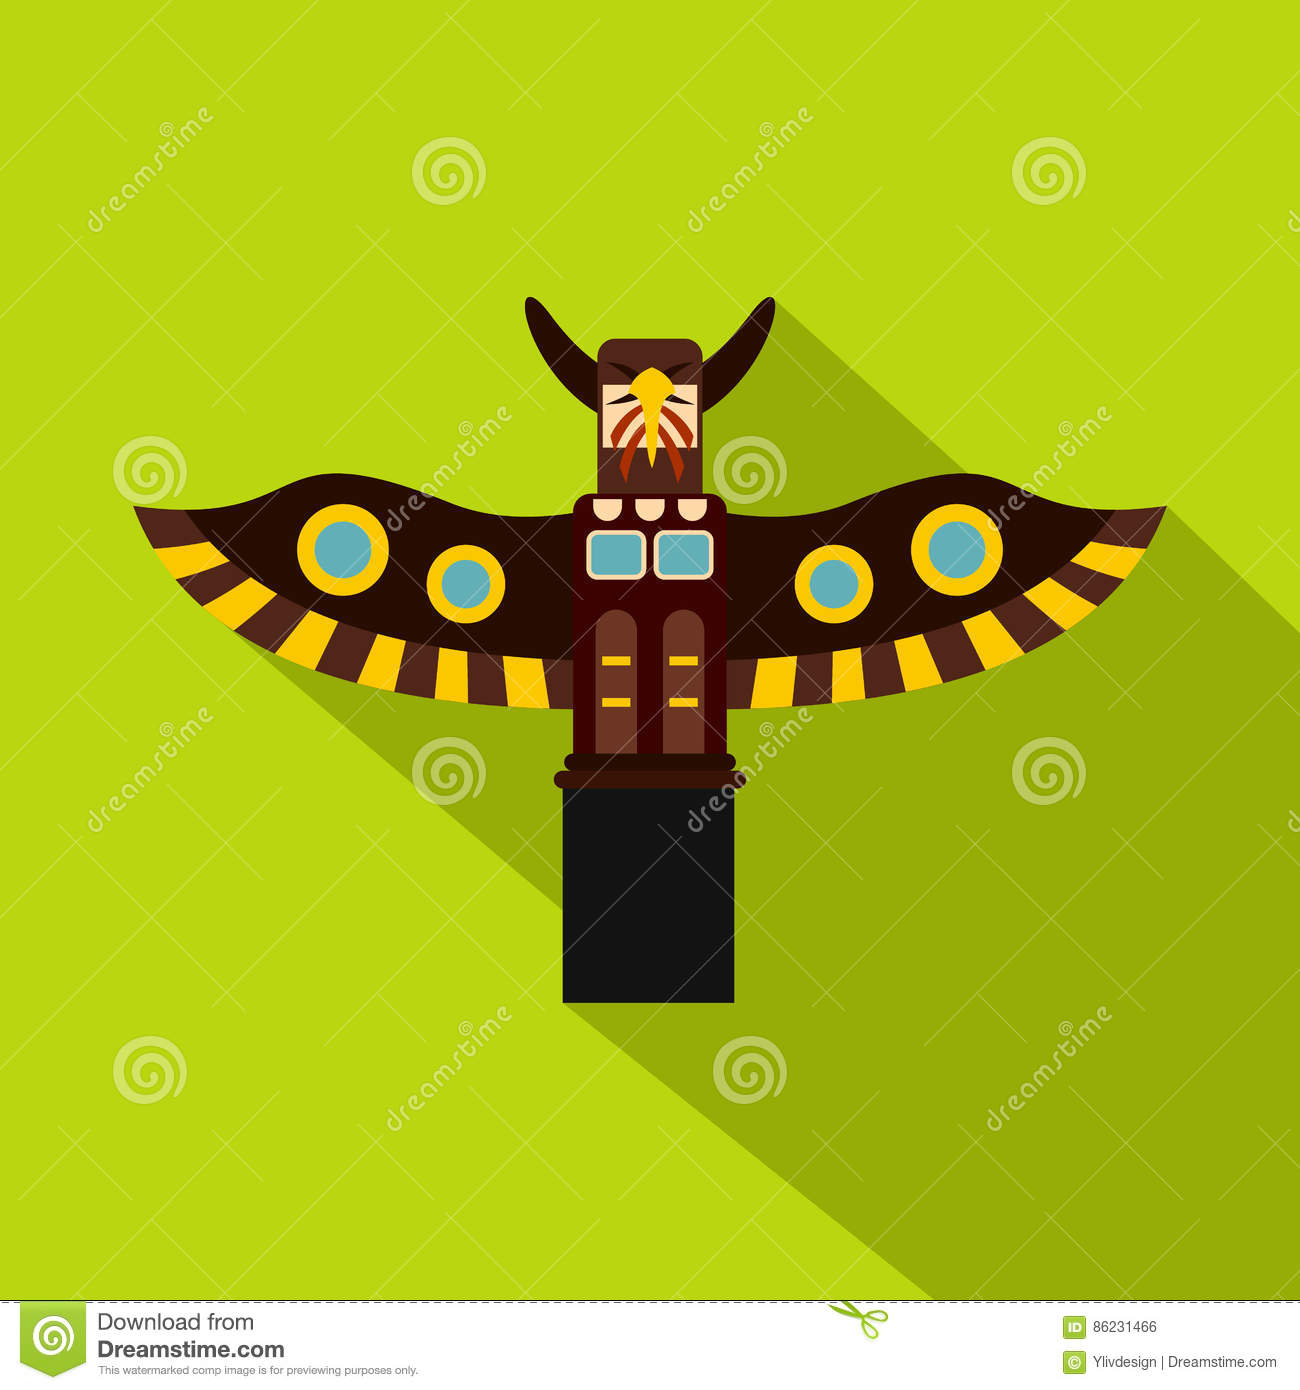 hight resolution of indian totem pole in stanley park canada icon flat illustration of indian totem pole